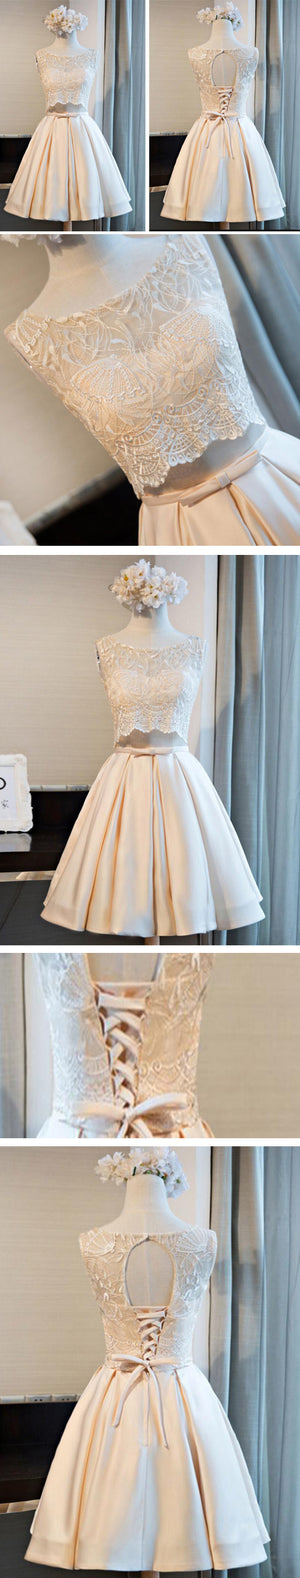 Elegant Bare-midriff Sleeveless Floral Prints Clairvoyant Outfit Lace Keyhole Lace Up Back Homecoming Dress,BD0123